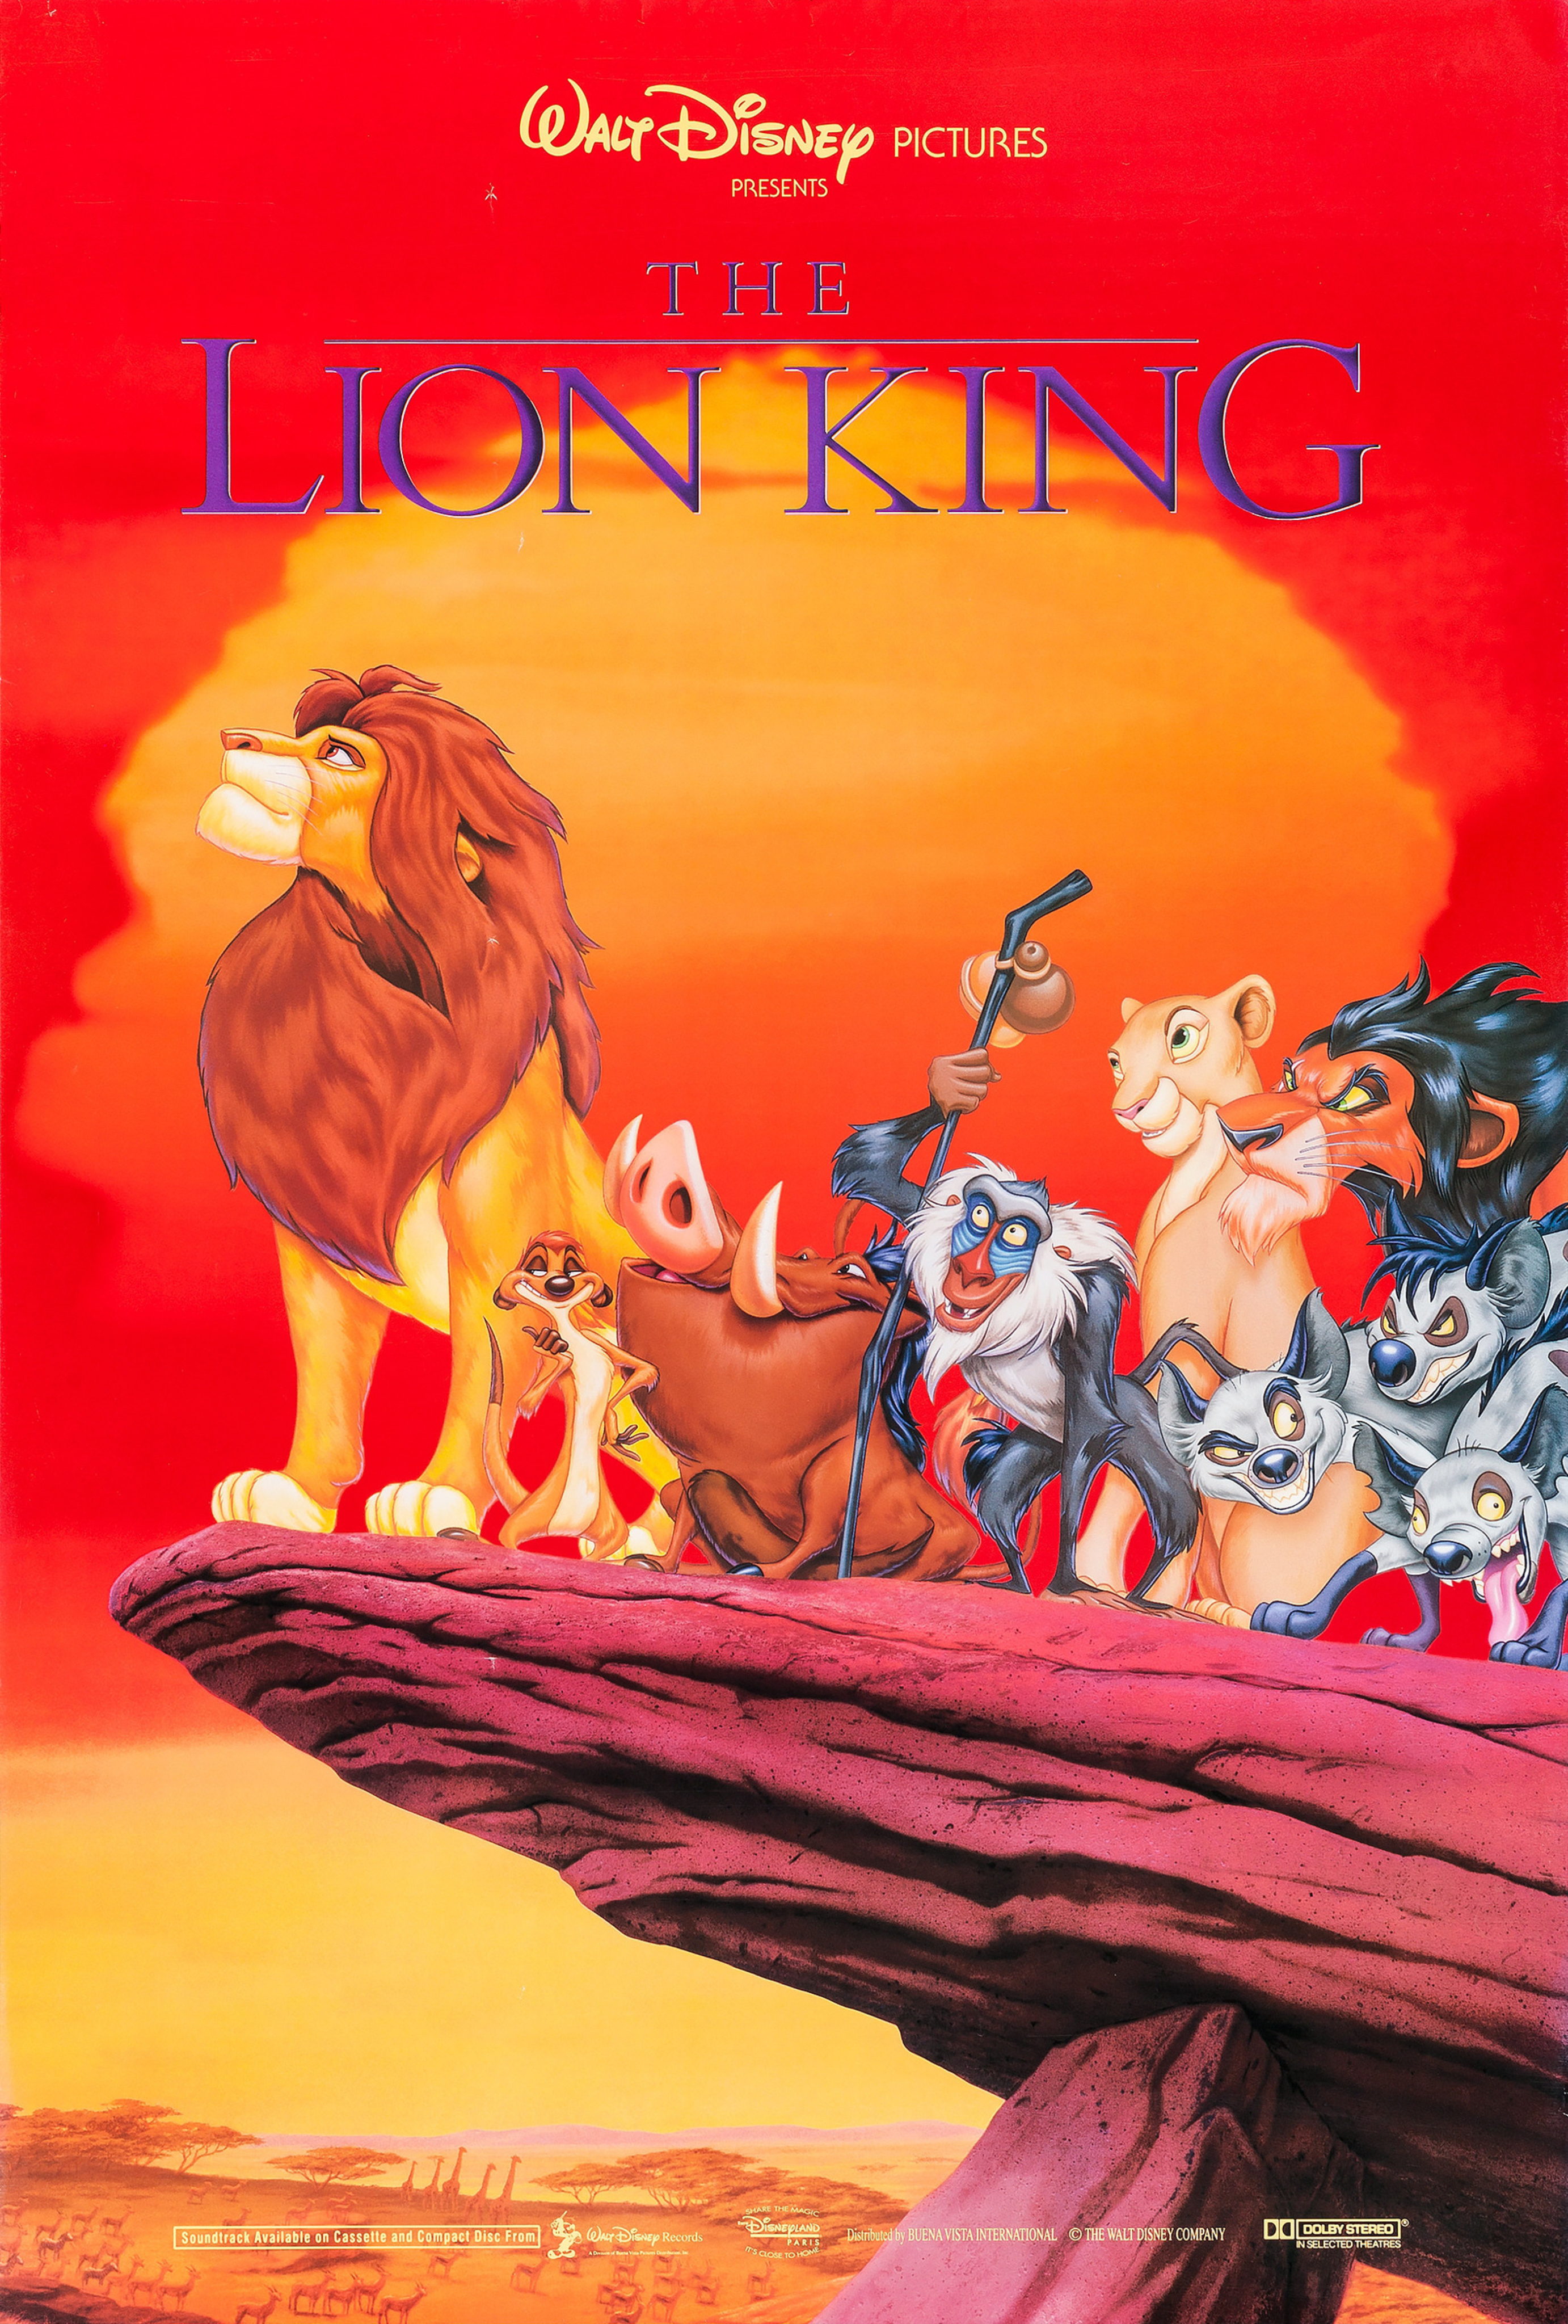 The Lion King 1994 2764 4096 Lion King Movie Lion King Poster The Lion King 1994